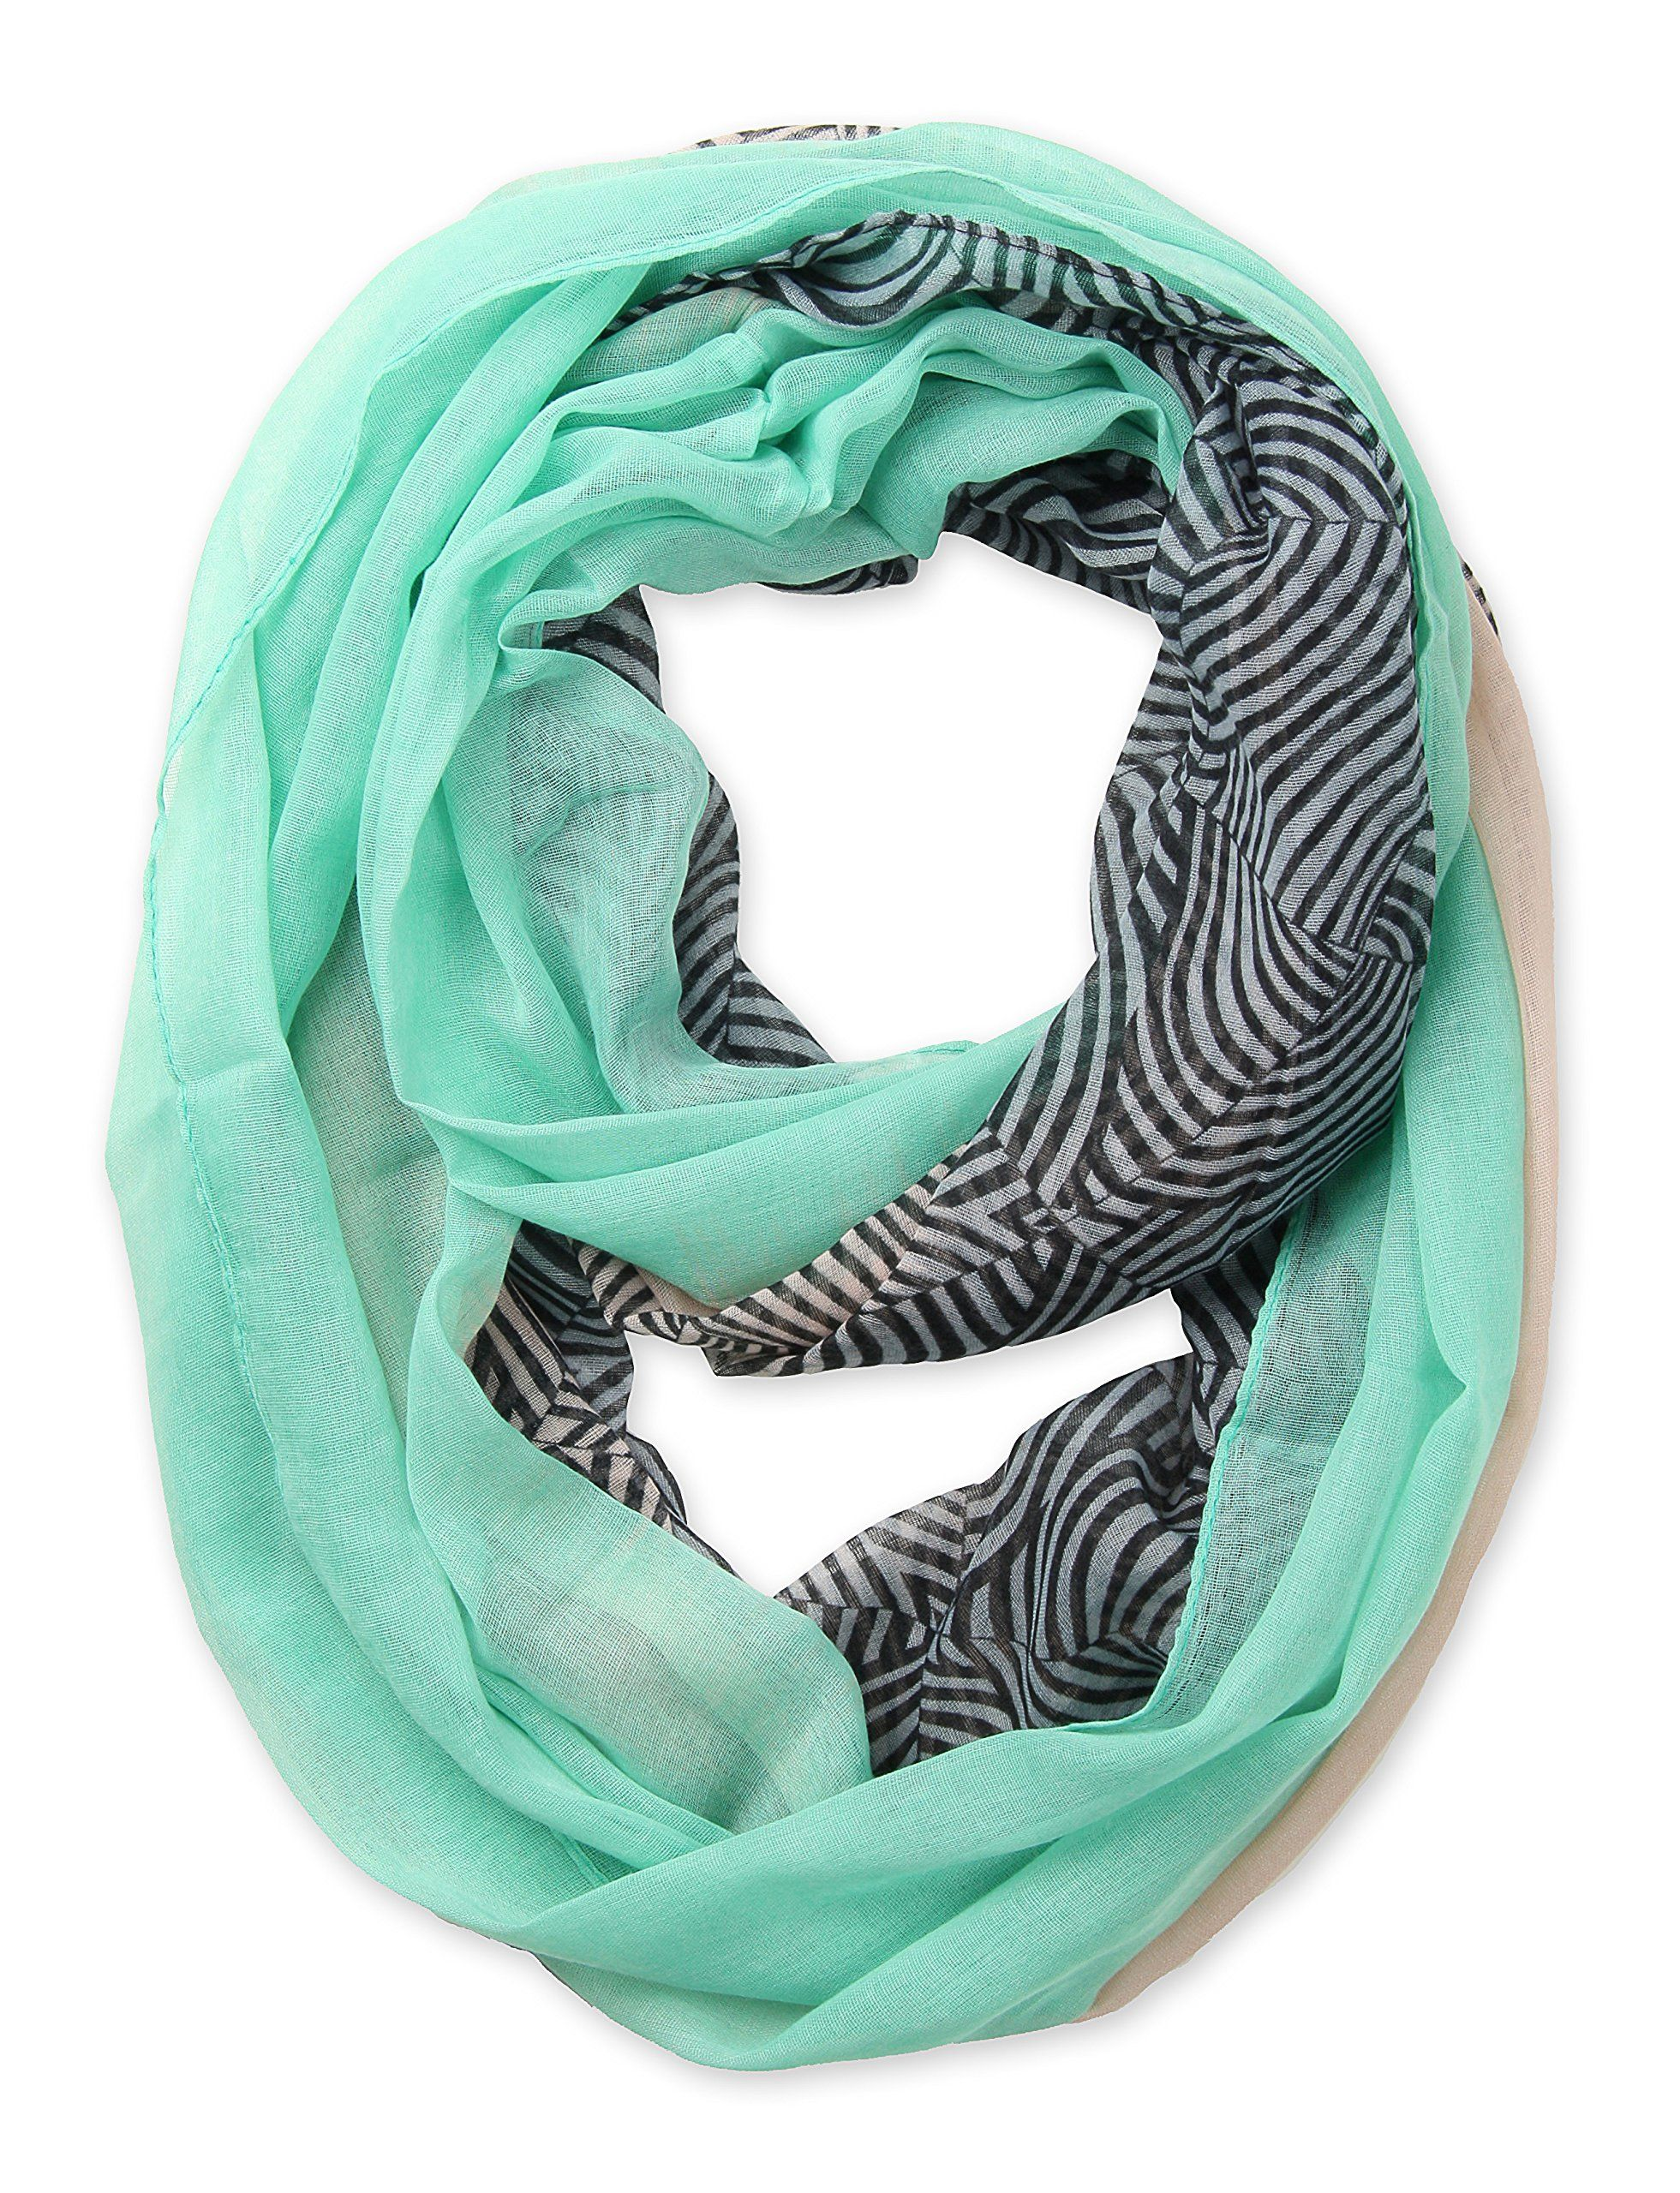 anthropologie gallery normal infinity product accessories scarf lyst darjeeling s scarves pink in women